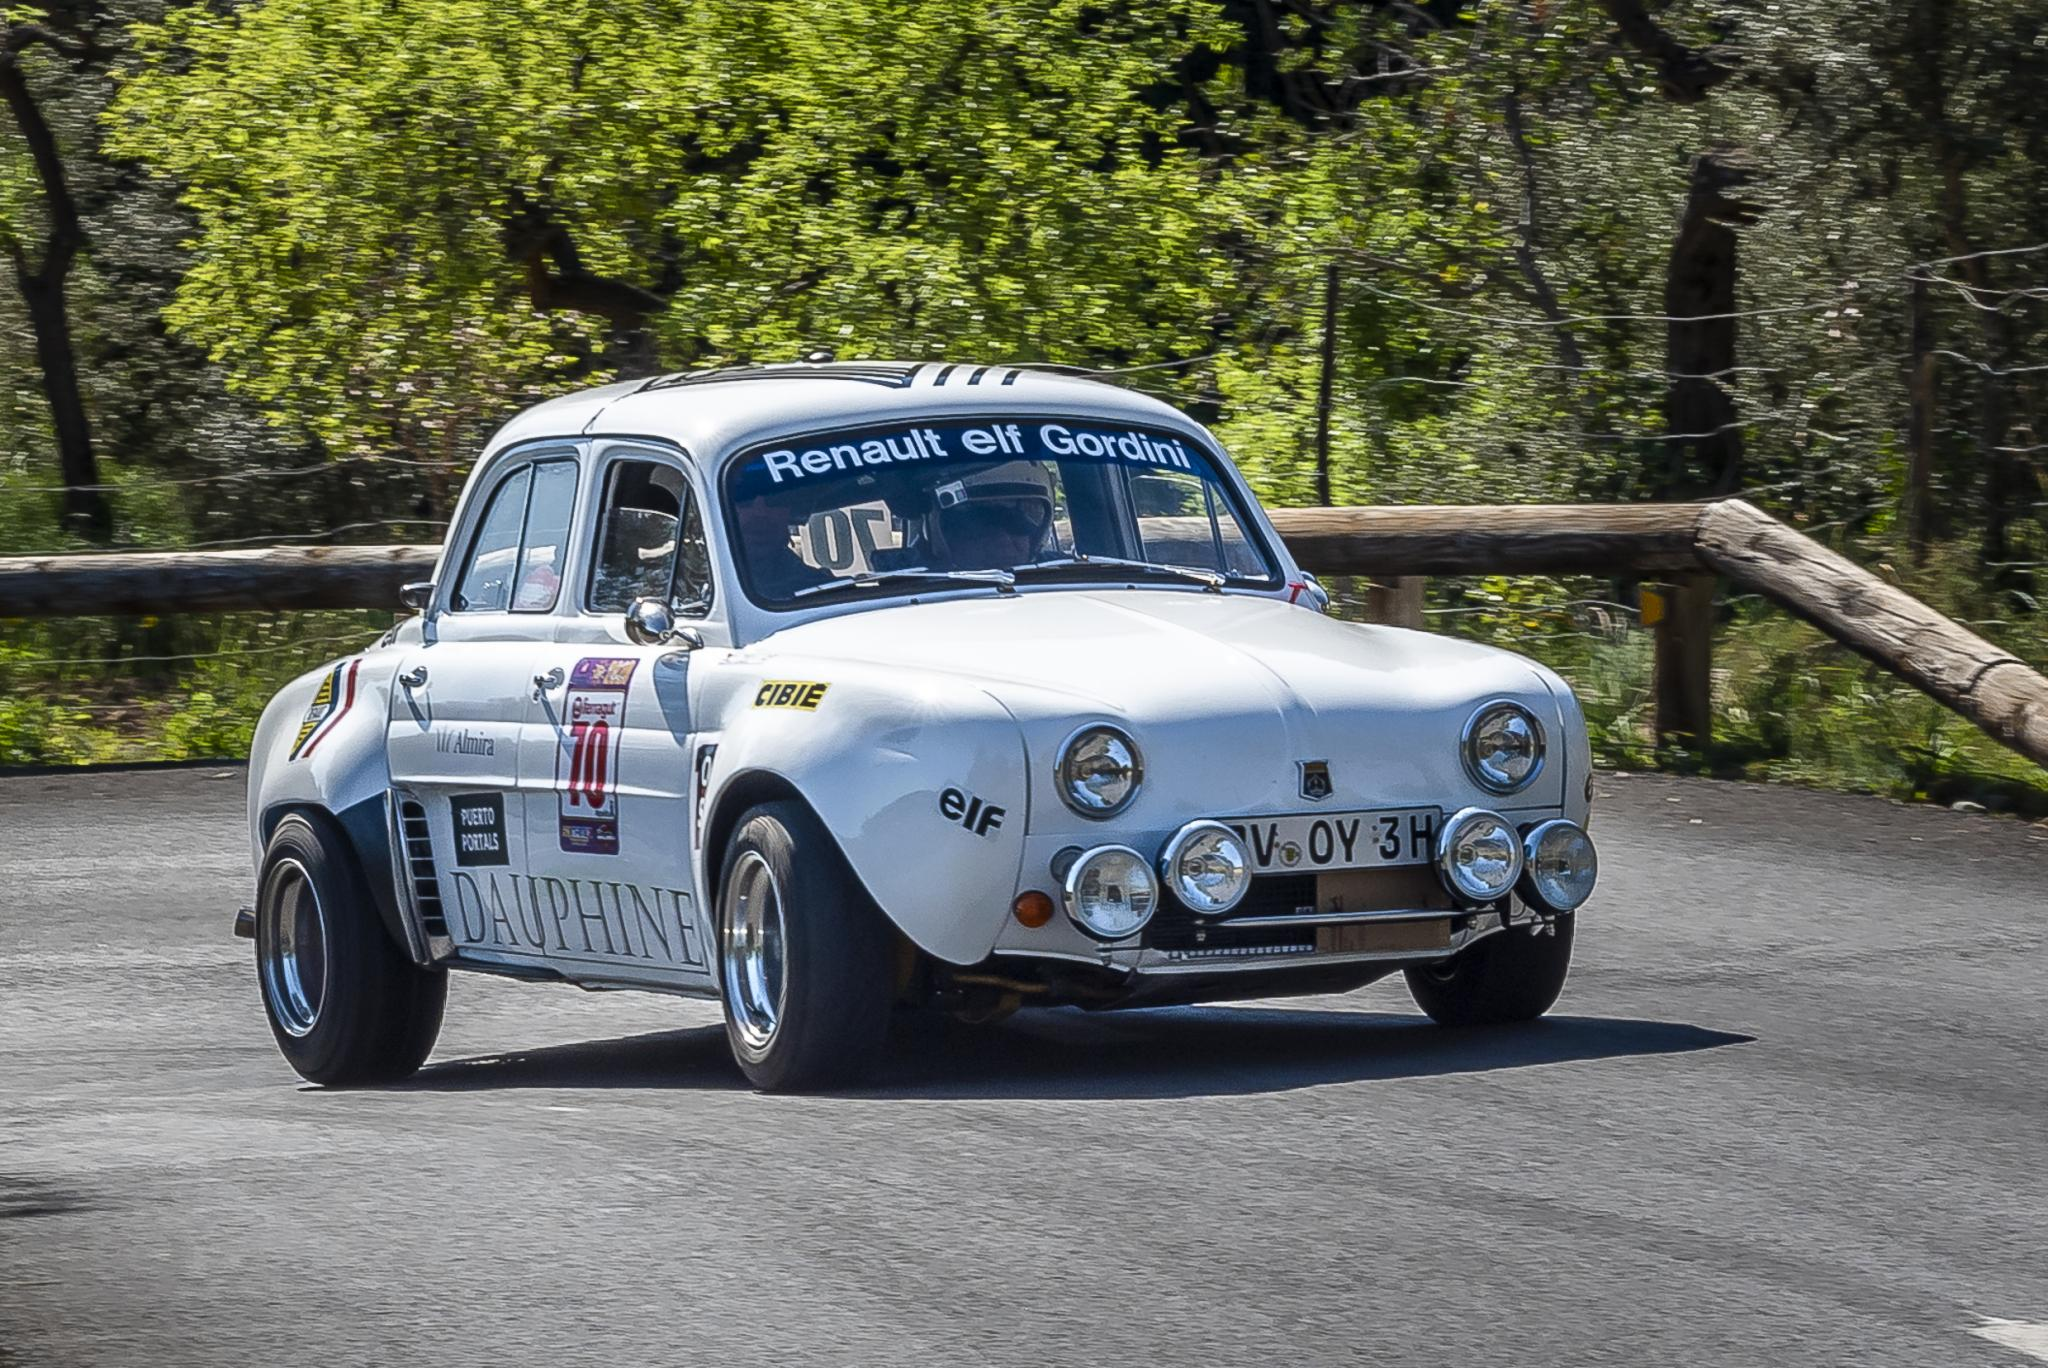 Classic Renault Dauphine in full competition gear looks like fun to throw about.